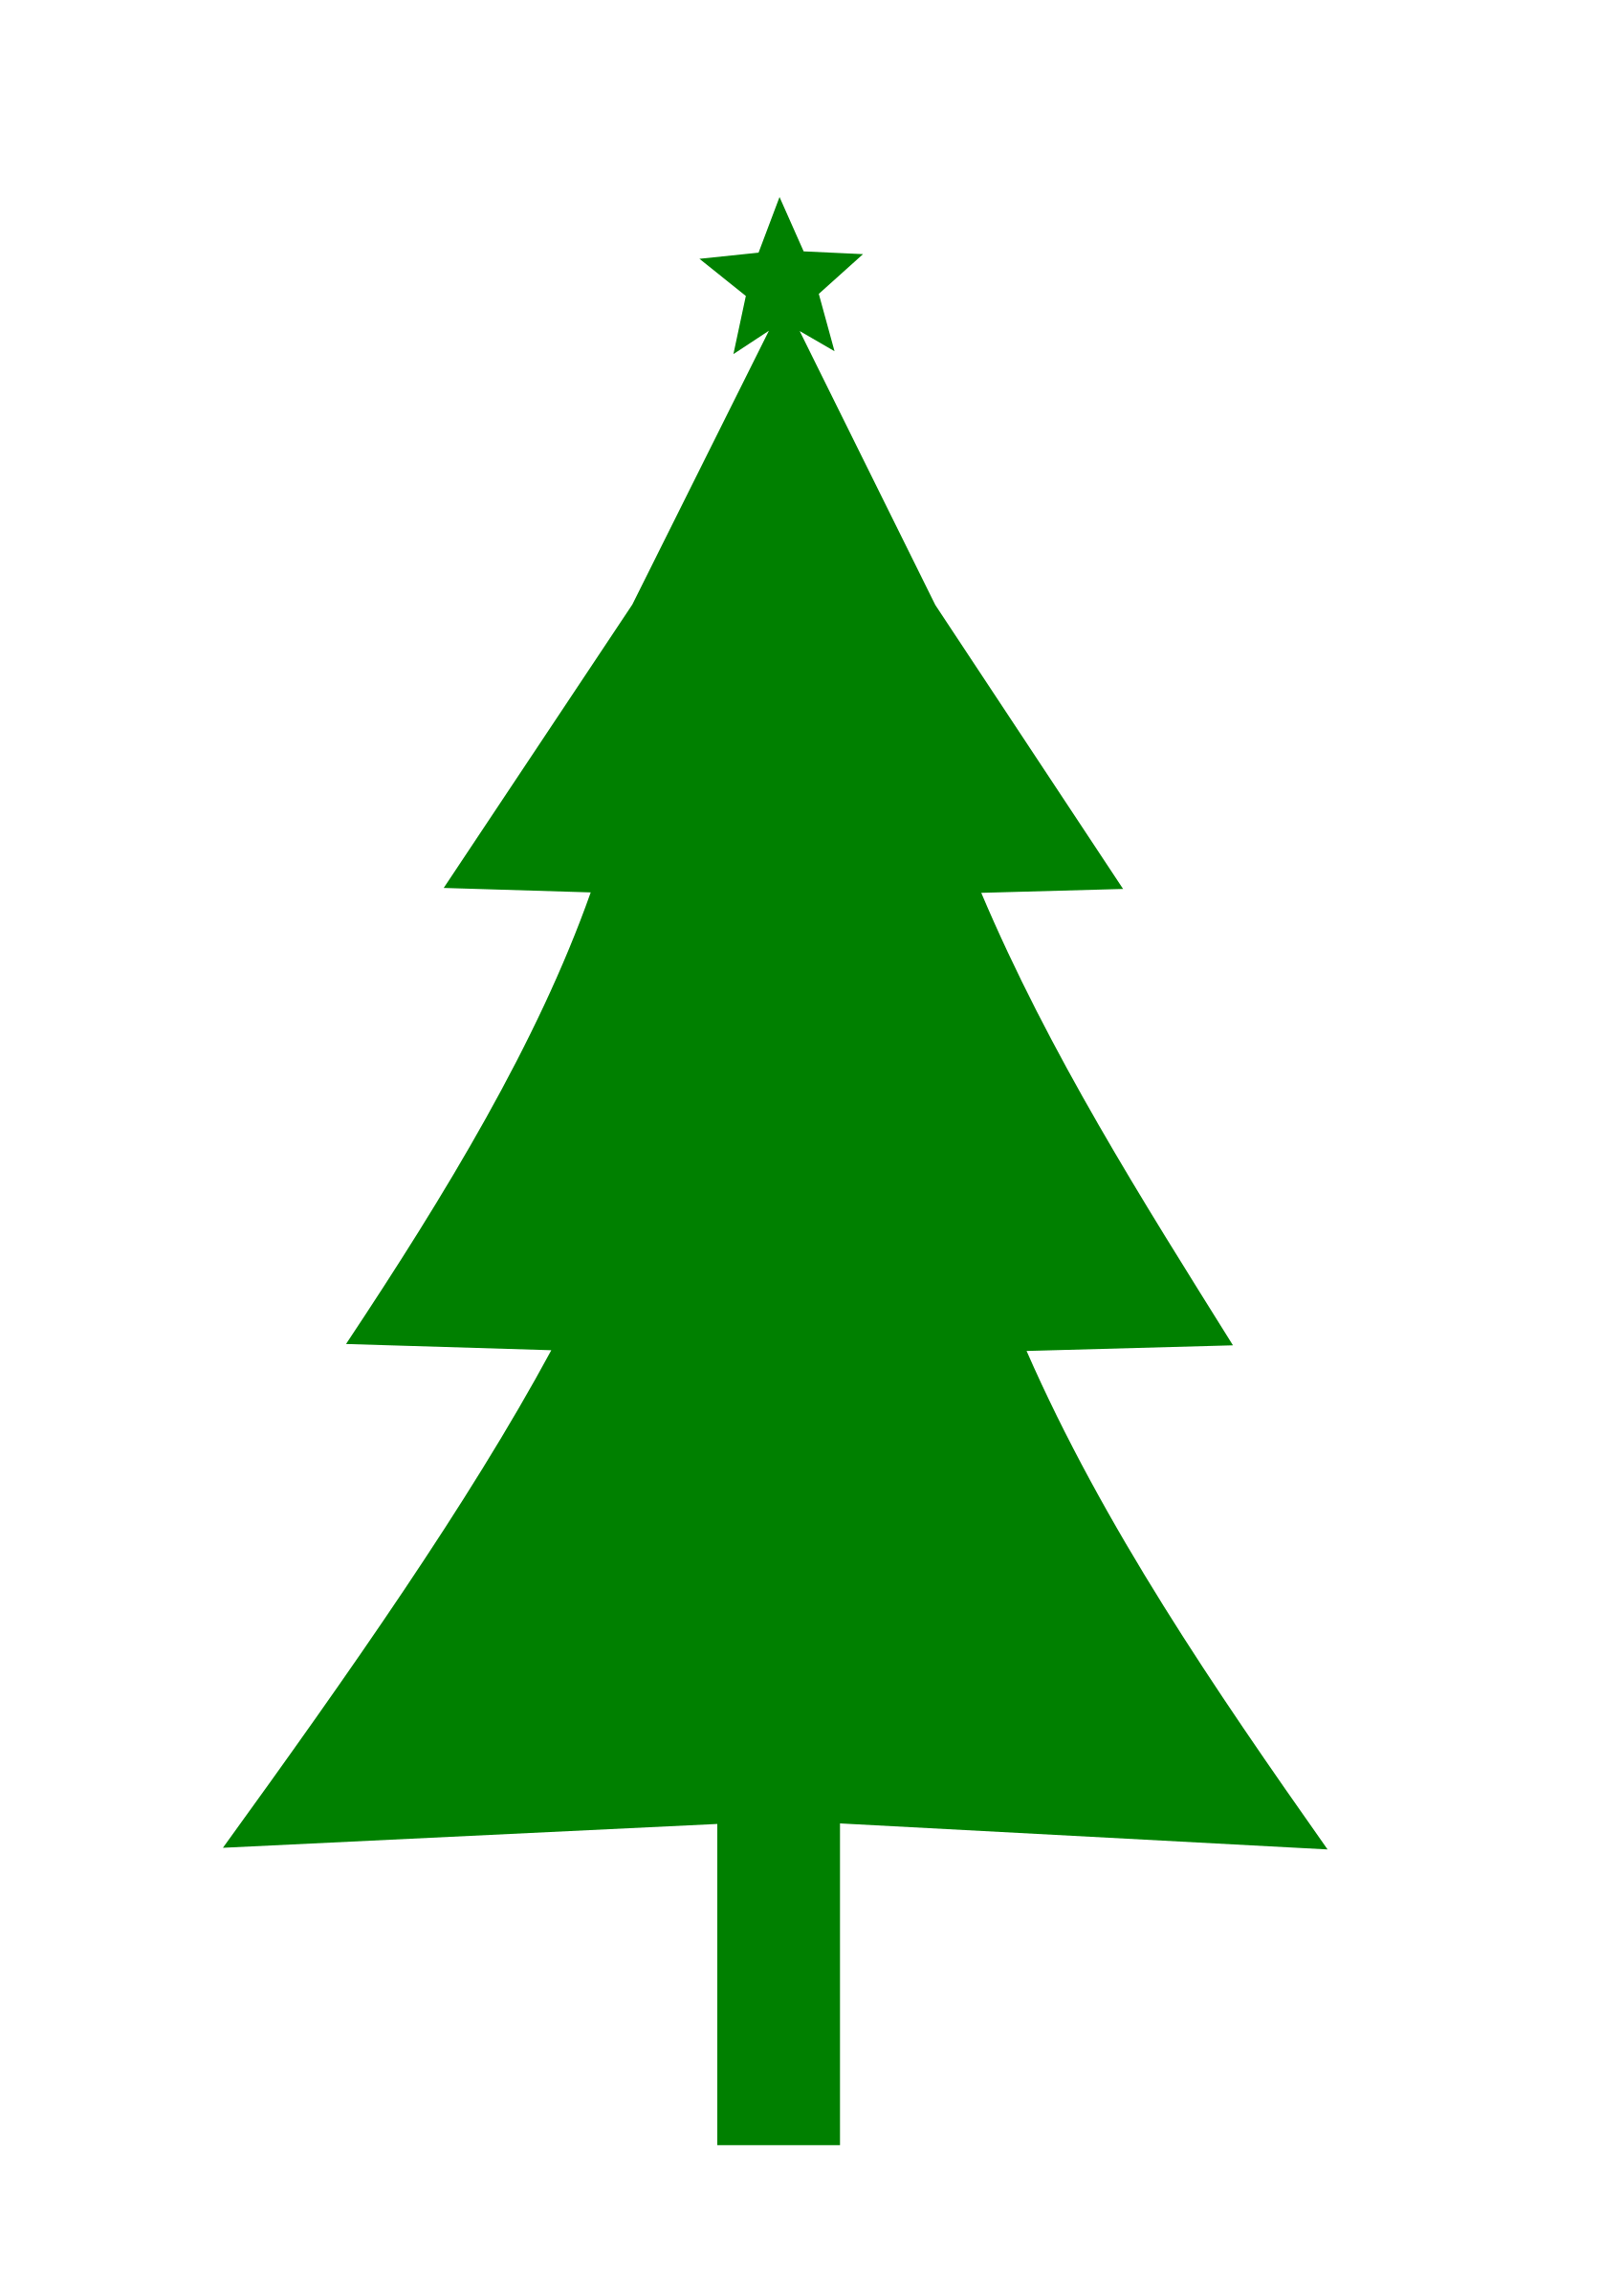 Clipart trees evergreen. Christmas silhouette at getdrawings